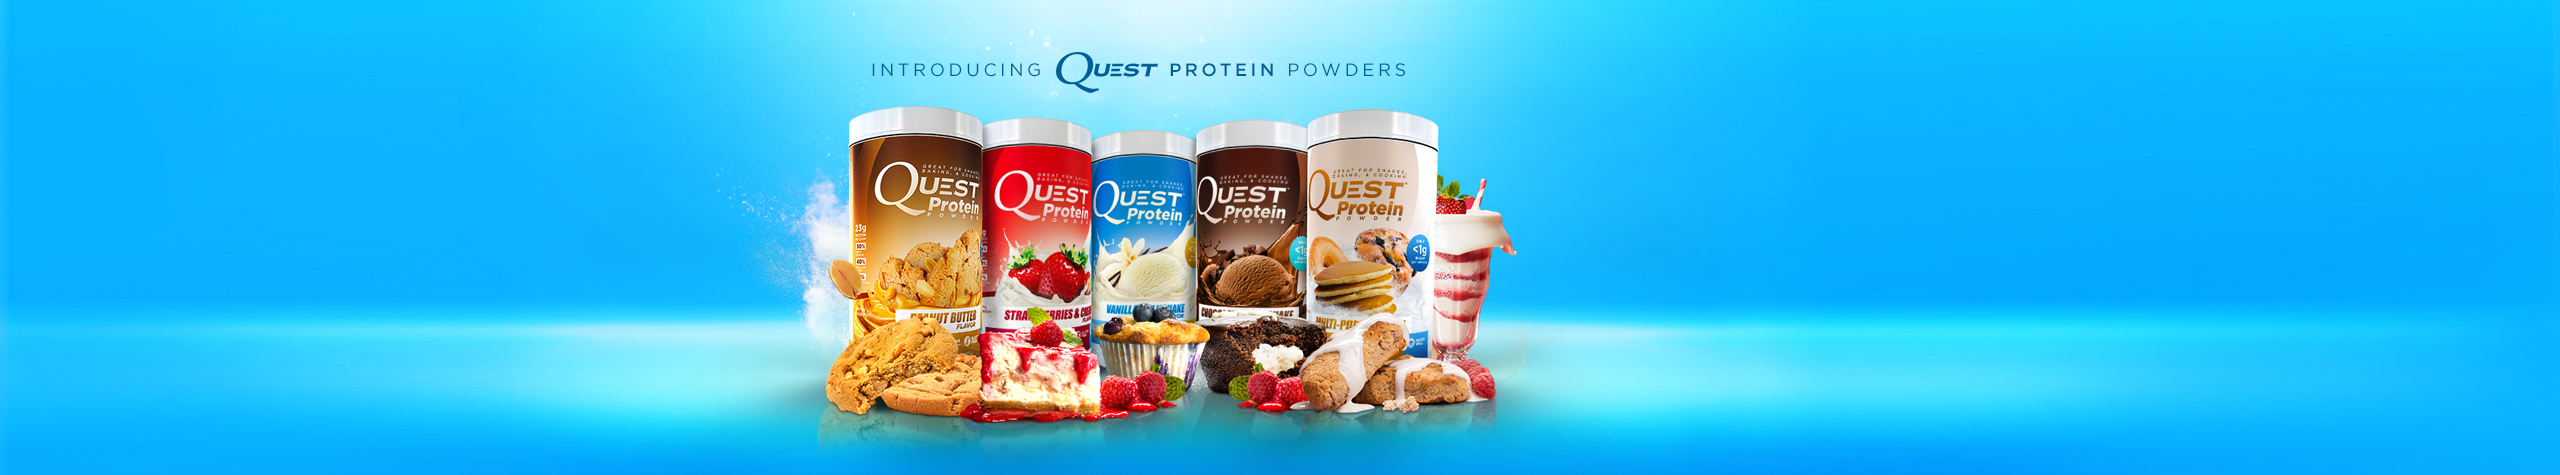 Quest Powders